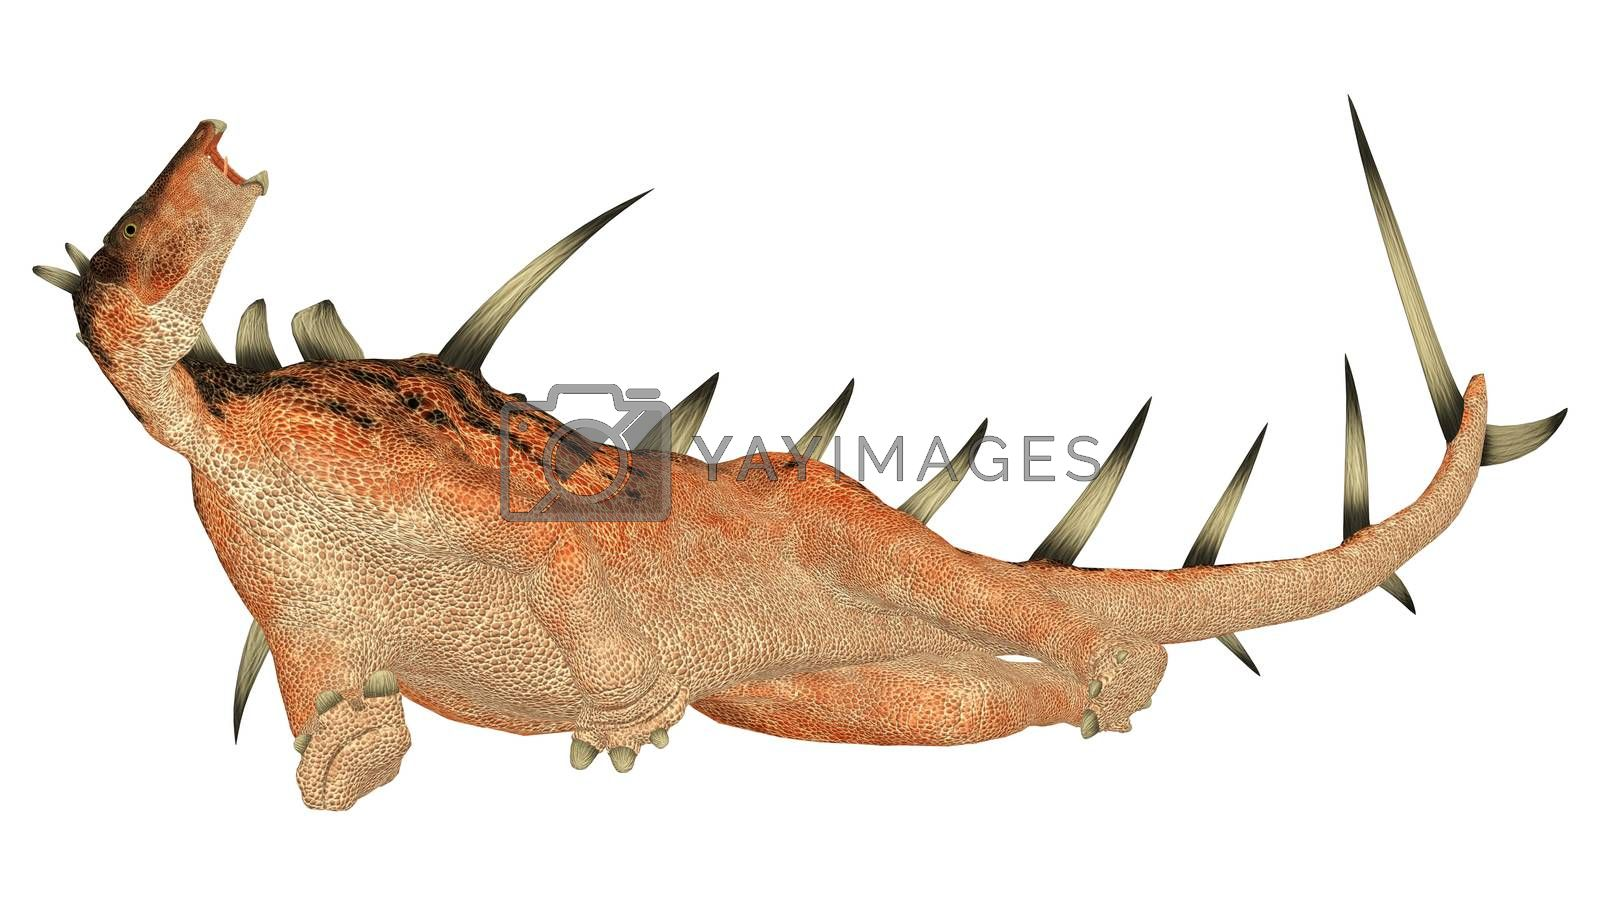 Royalty free image of Dinosaur Kentrosaurus by Vac